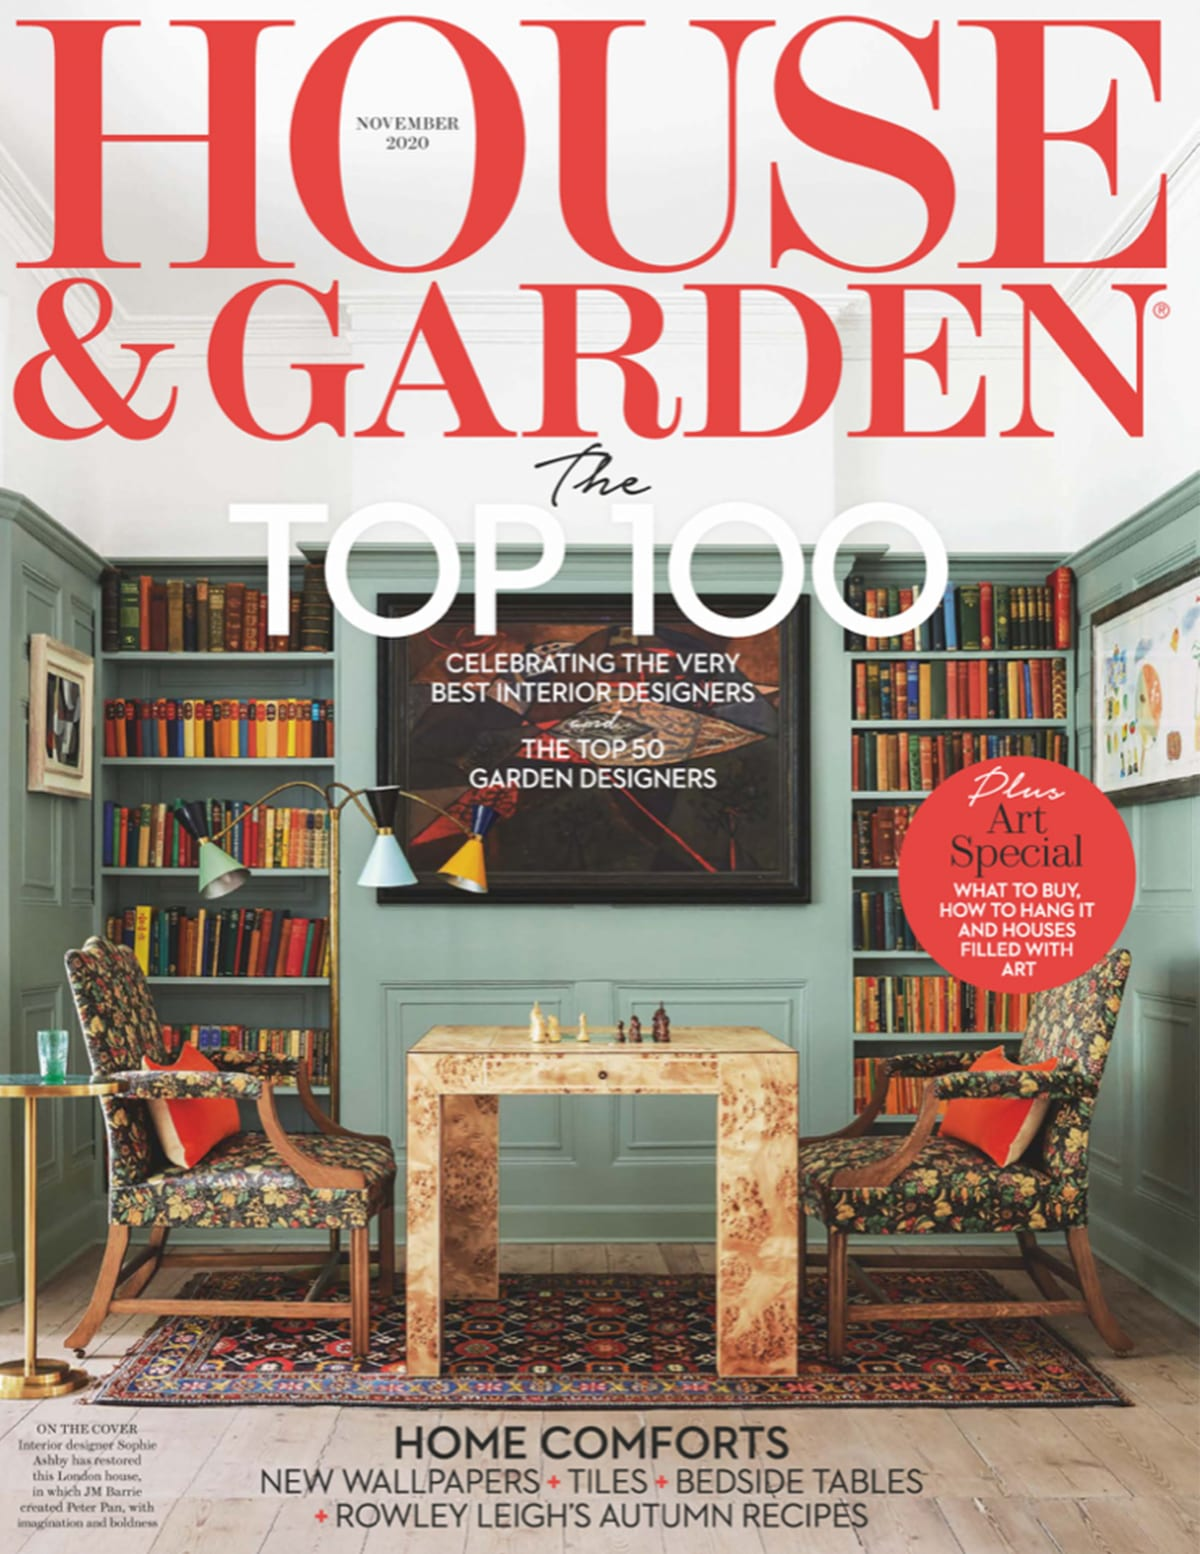 8 Holland Street in House & Garden: TOP 100